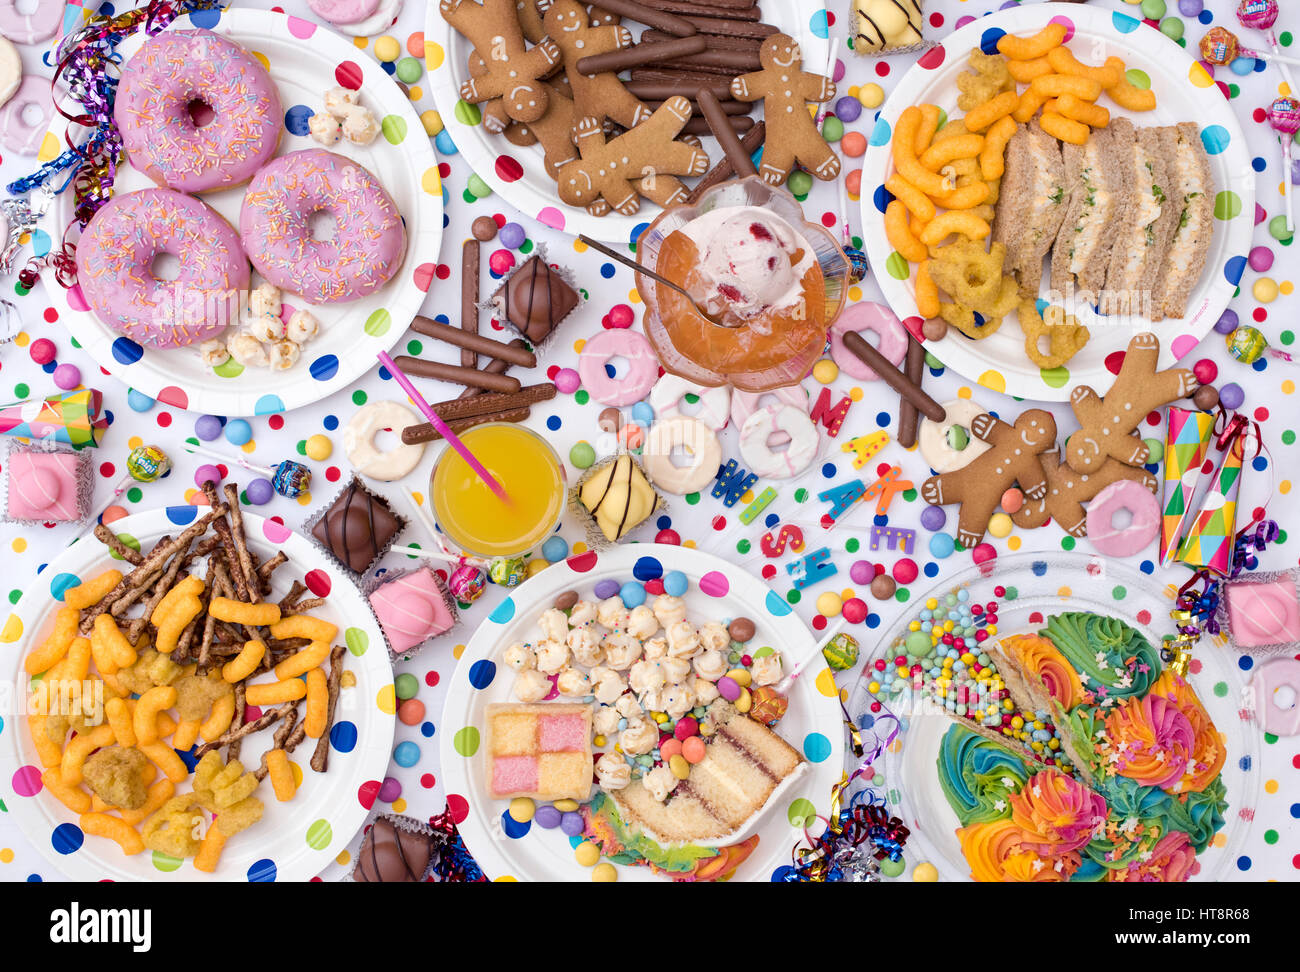 Childrens party food including sandwiches, cake, jelly and ice cream, biscuits, crisps, sweets and doughnuts on - Stock Image